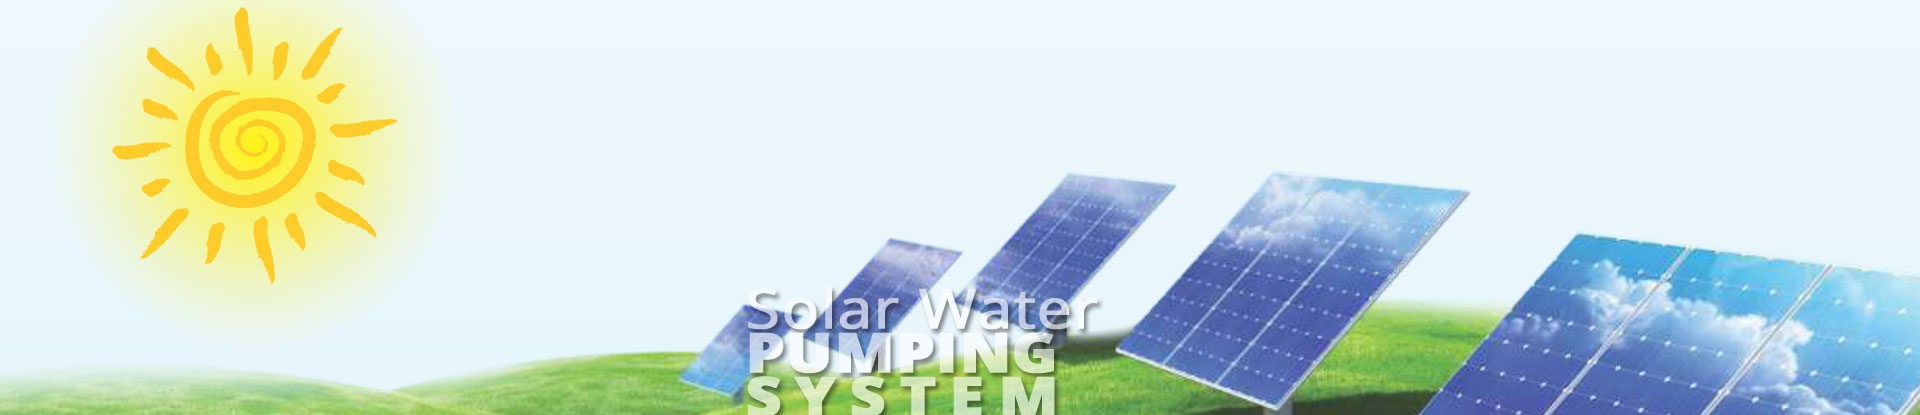 Solar Water Pumping System | Captain Polyplast Ltd.